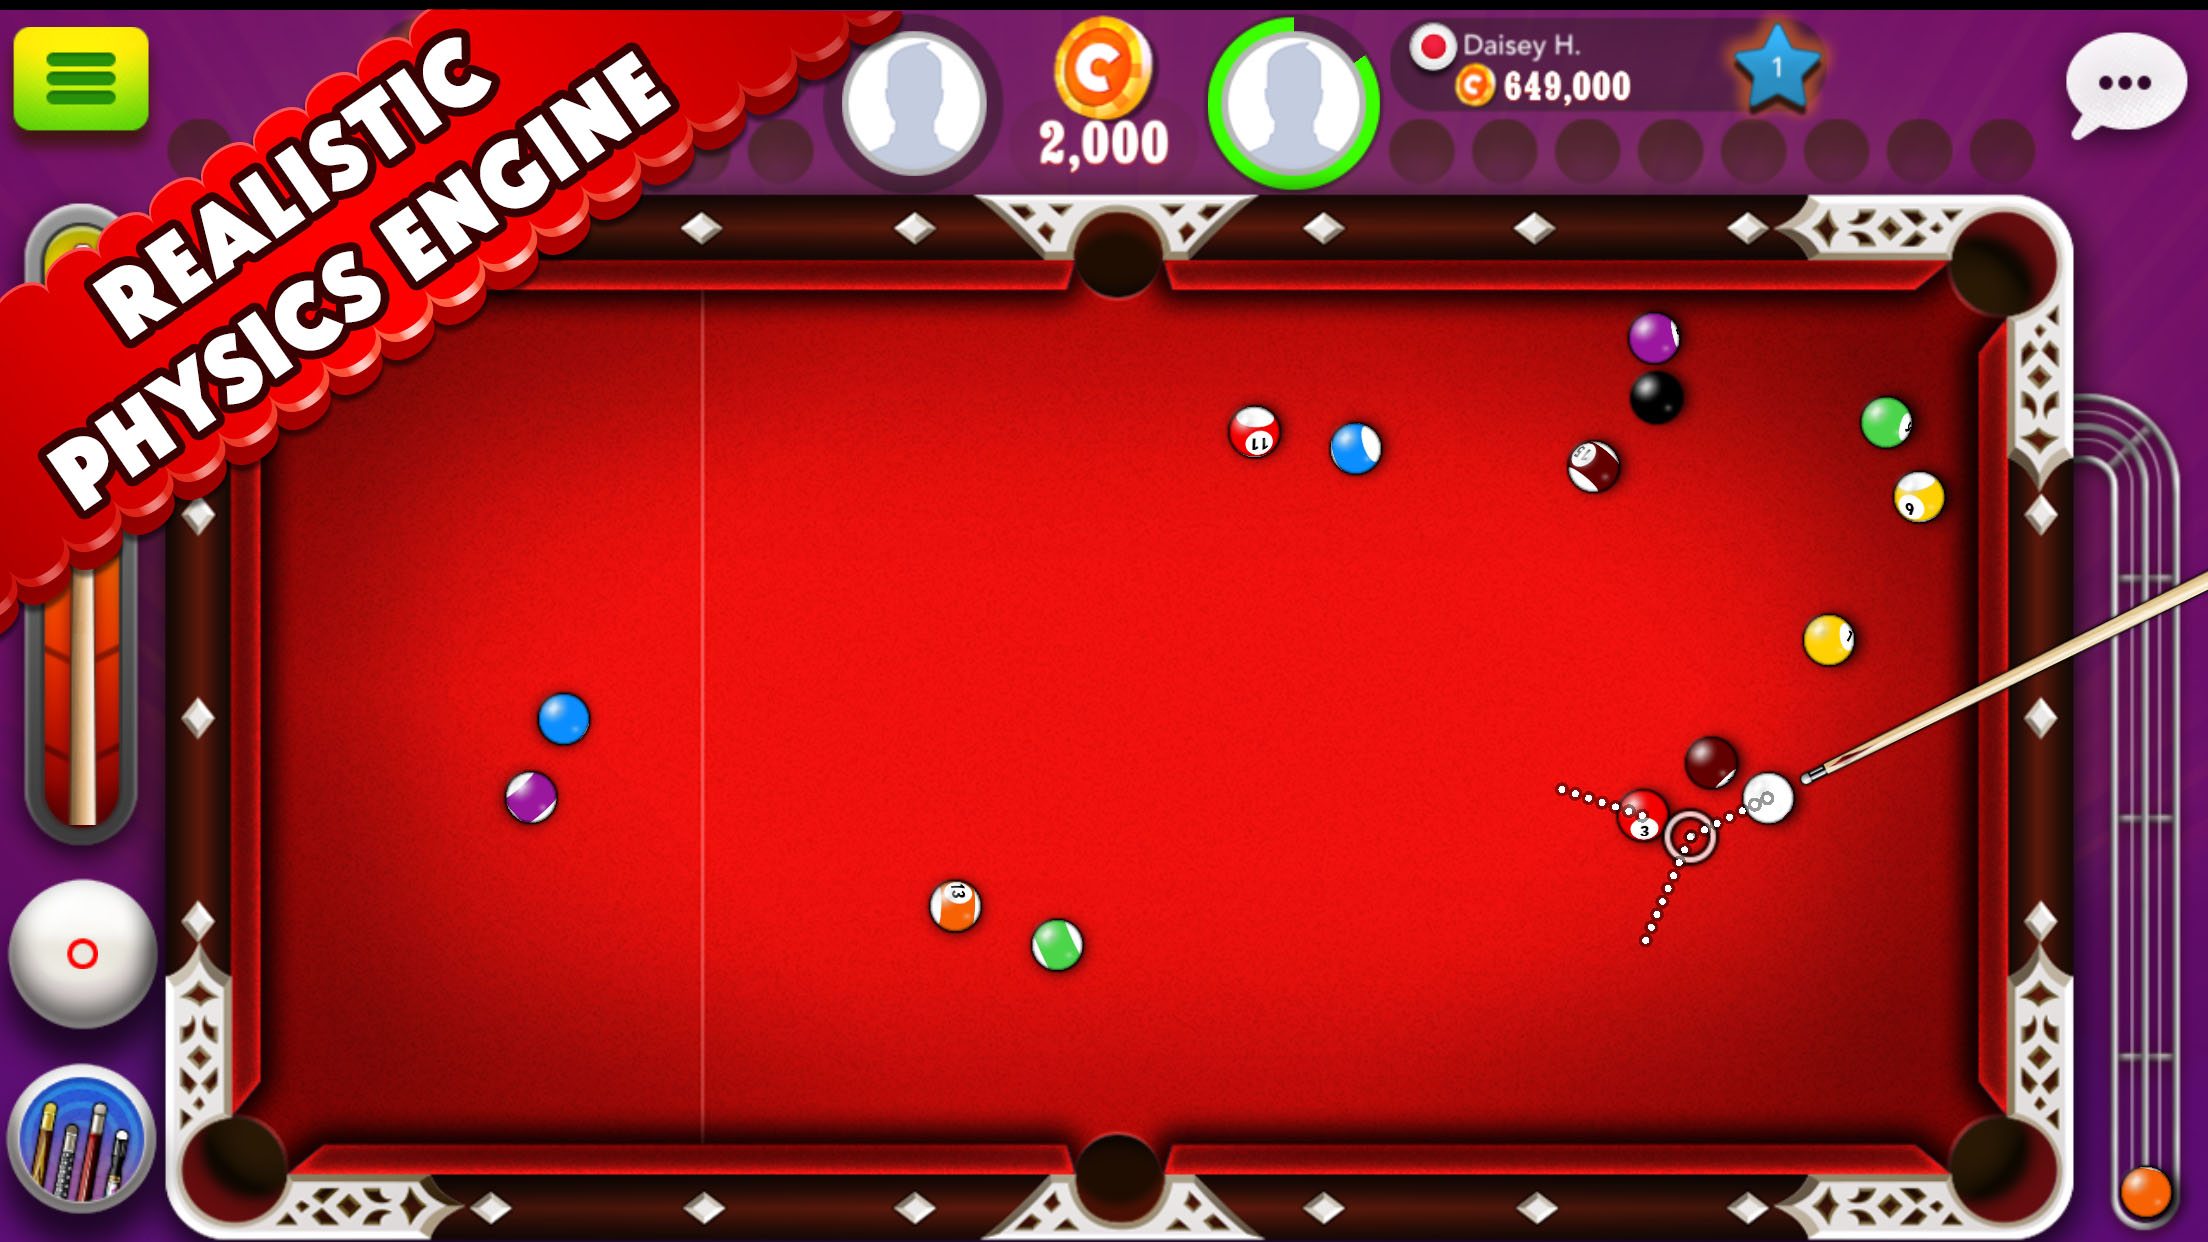 8 ball game mobile app